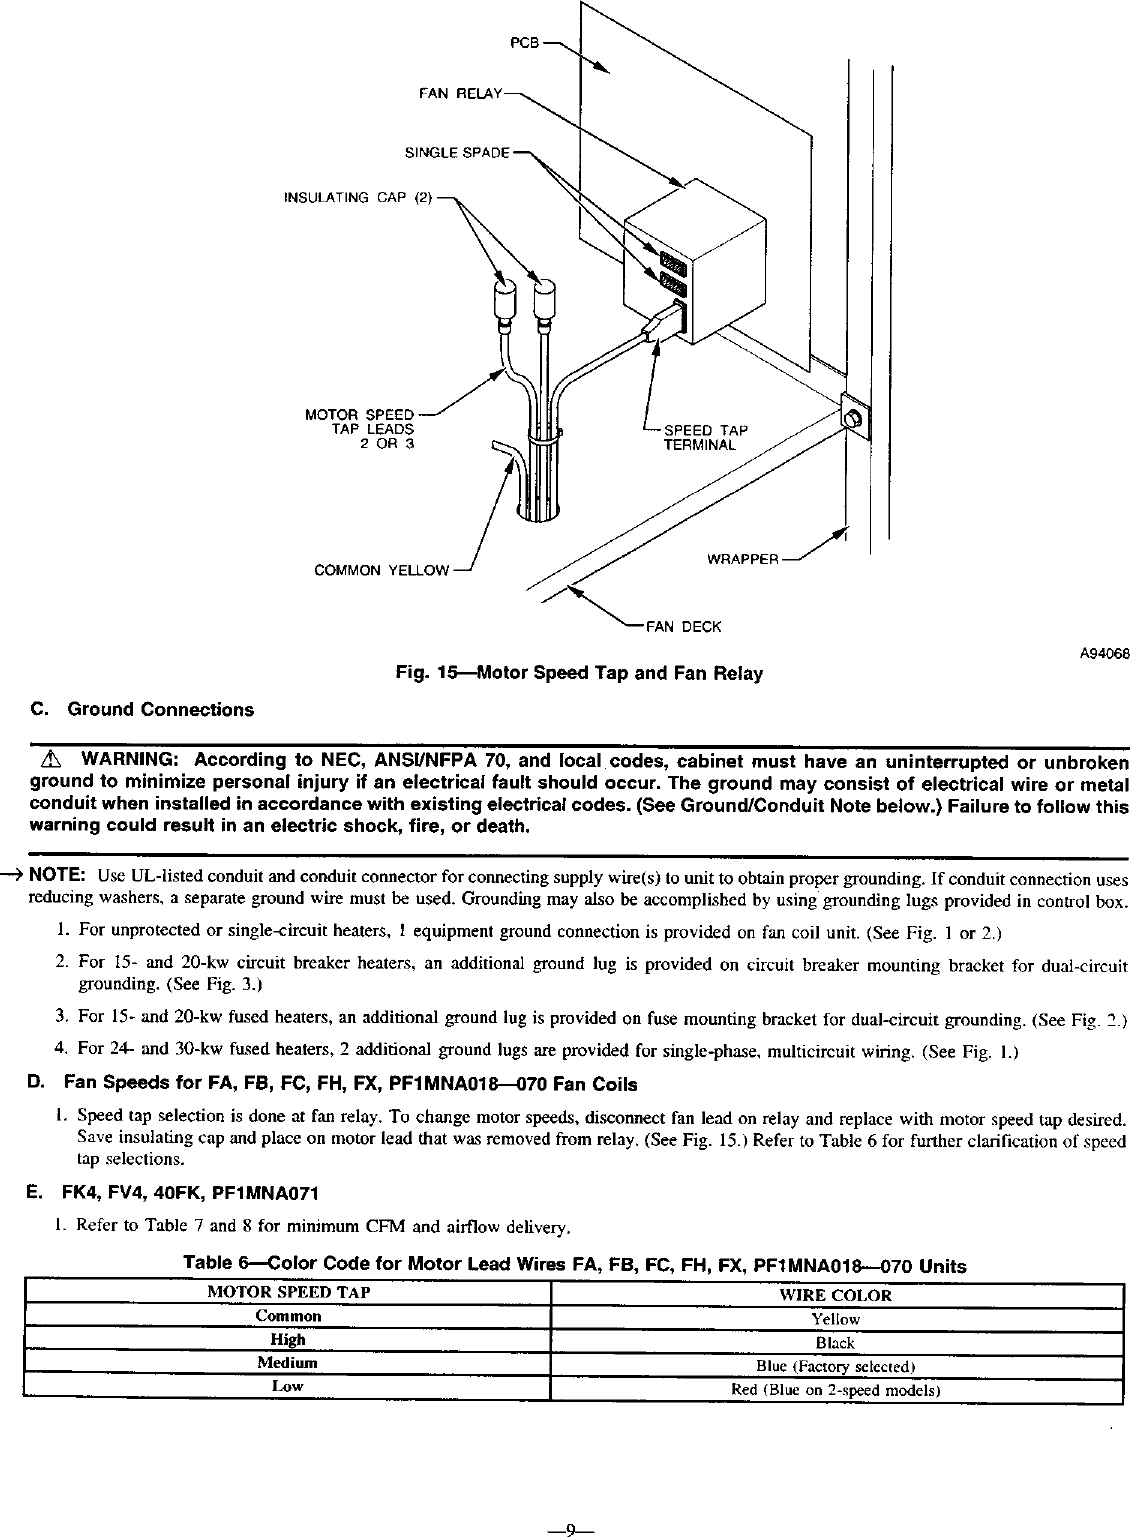 Carrier Air Handler Auxiliary Heater Kit Manual L0210329 Relay Ground Terminal Page 9 Of 12